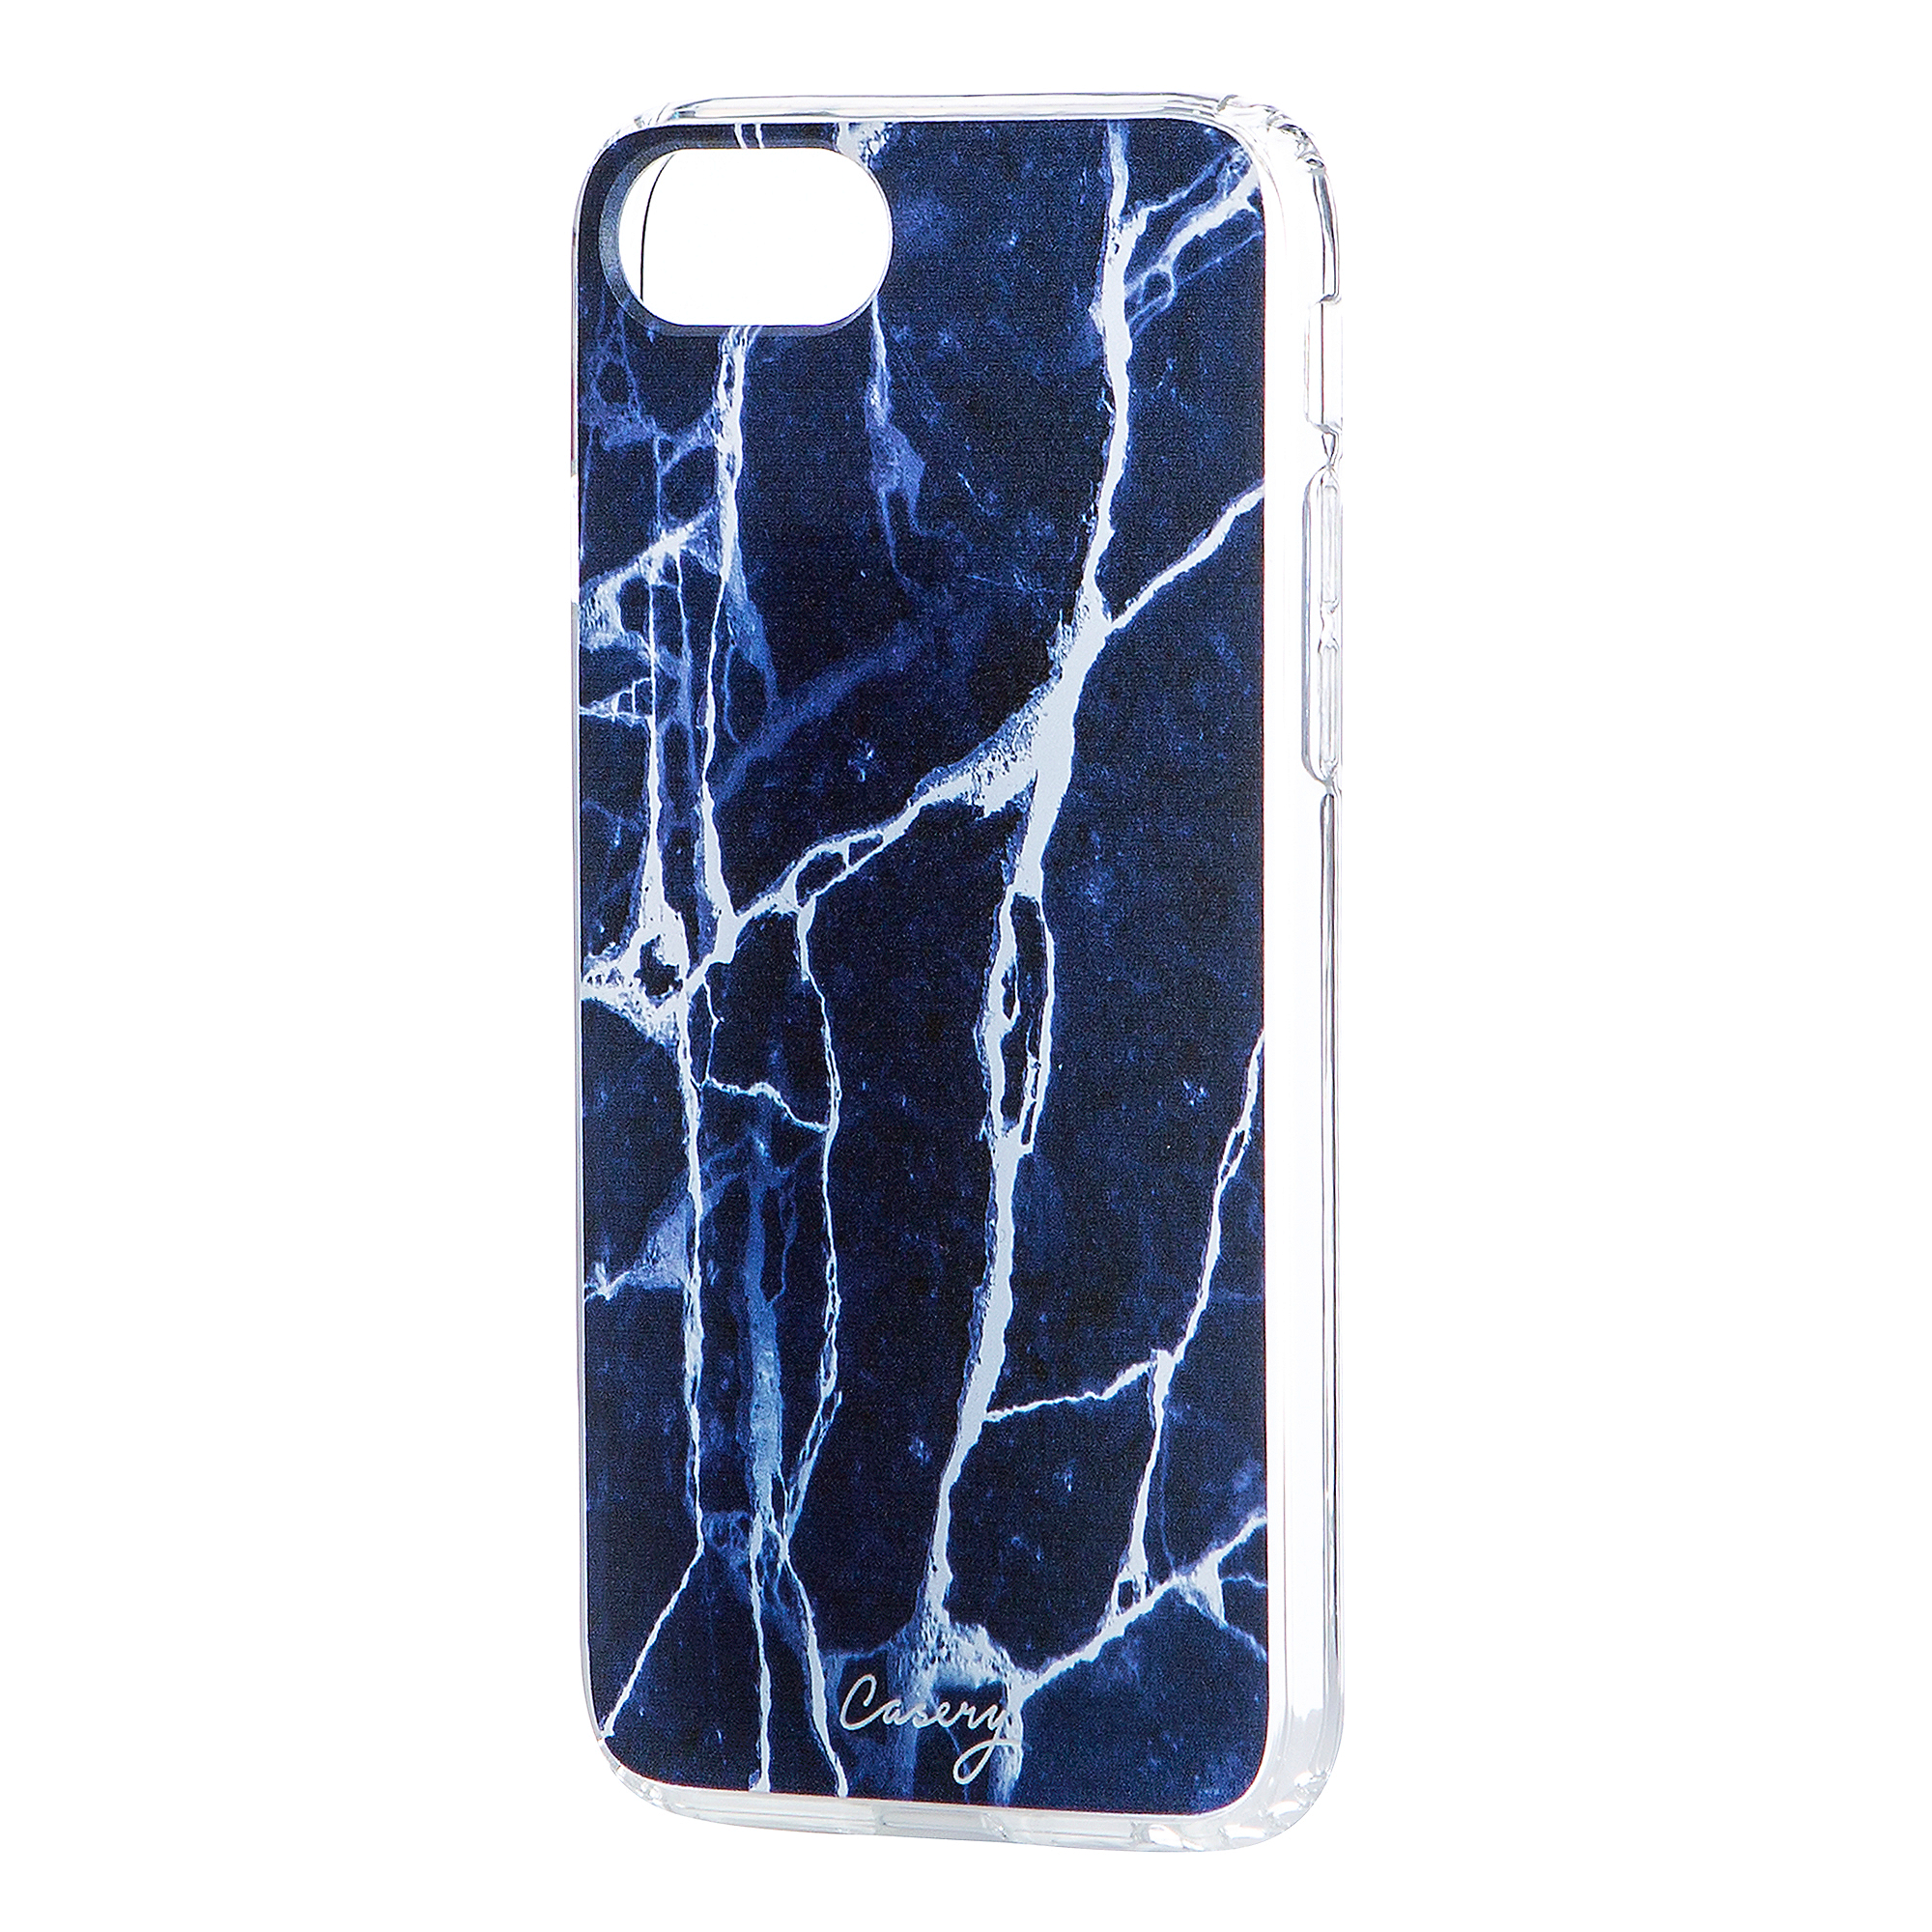 Studio  Casery Blue Agate iPhone 6s/6/7/8 Case